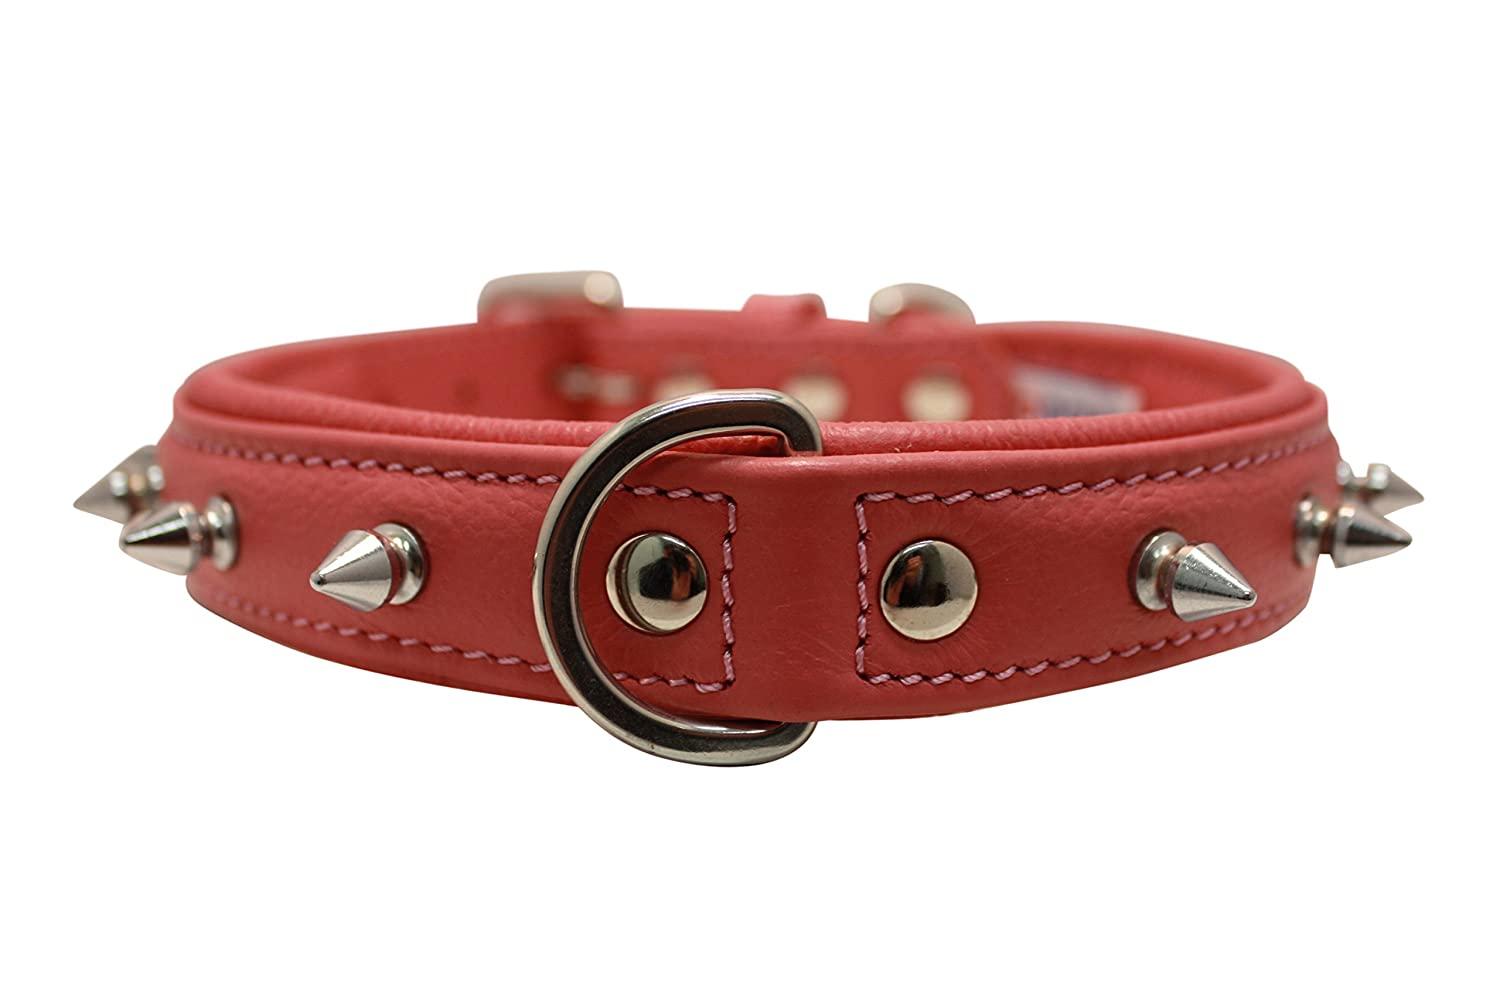 Spiked Studded Leather Dog Collar, Padded, Double-Ply, 22  x 1 , Pink. Stainless Steel (redterdam Spiked) Boxer, Retriever. Necks  16.5-20